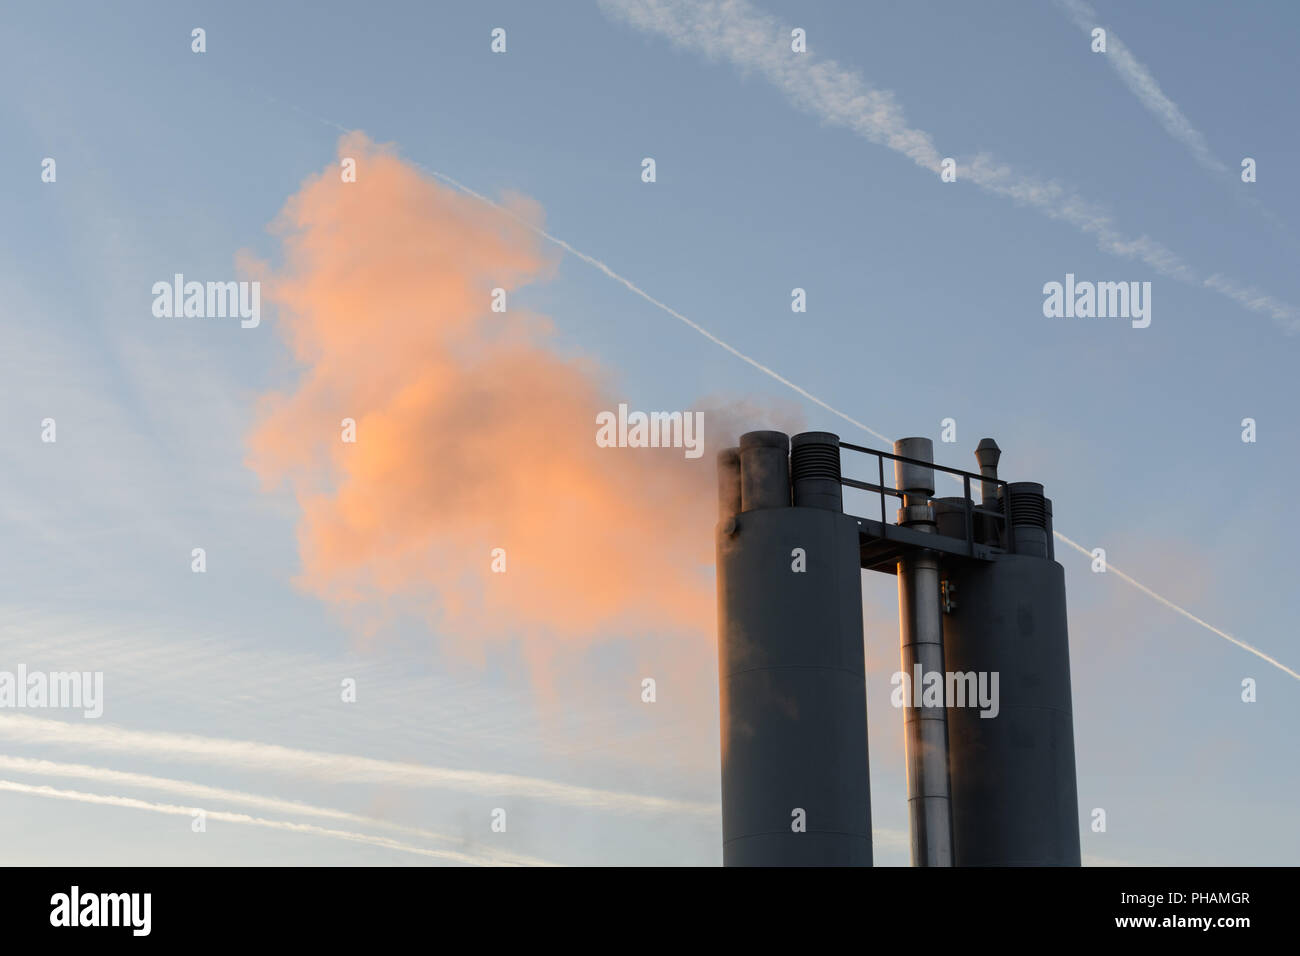 Idyllically lit smoke from industrial chimney - Stock Image